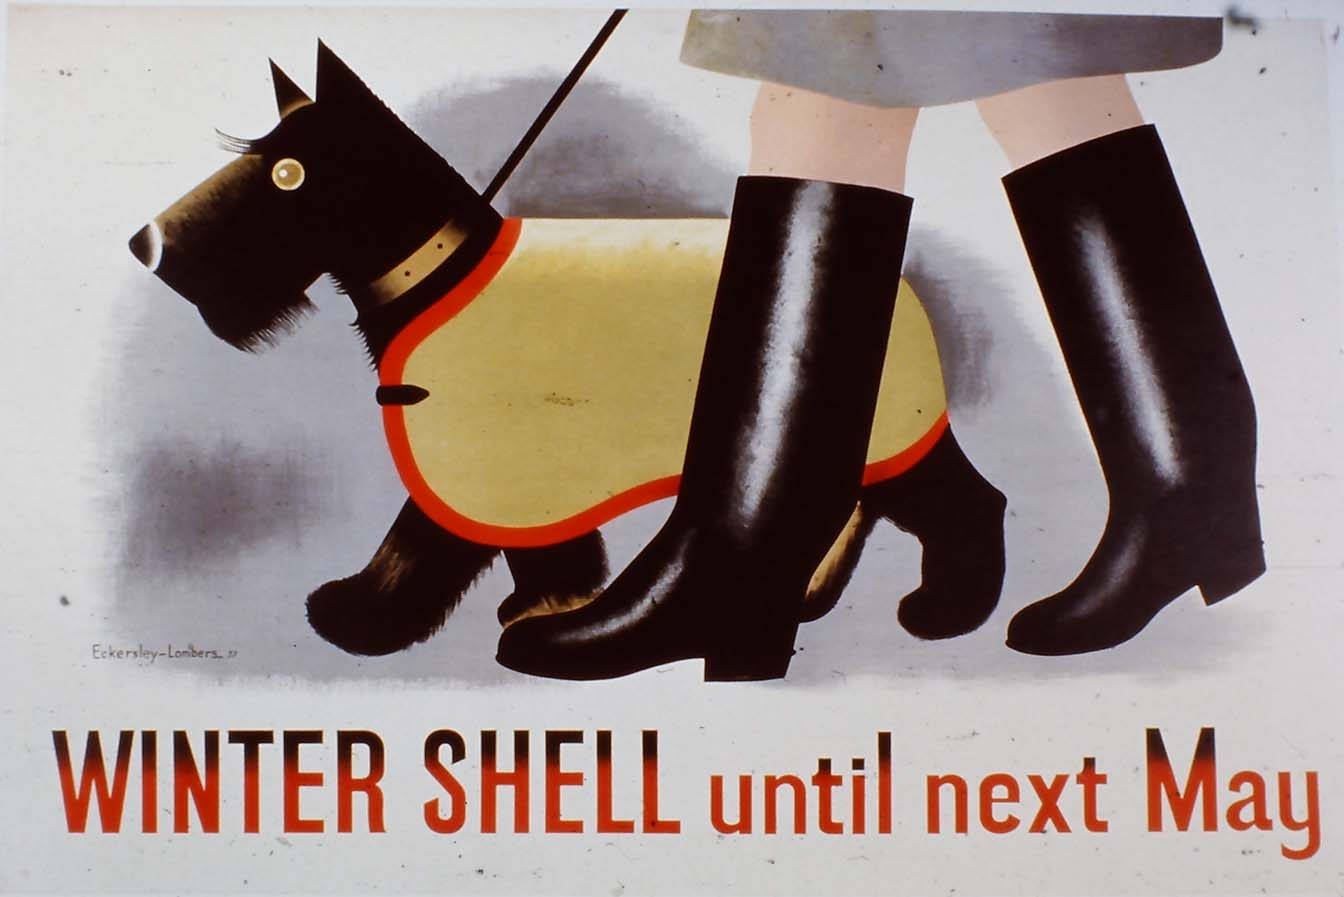 lithographic poster of a dog in a coat